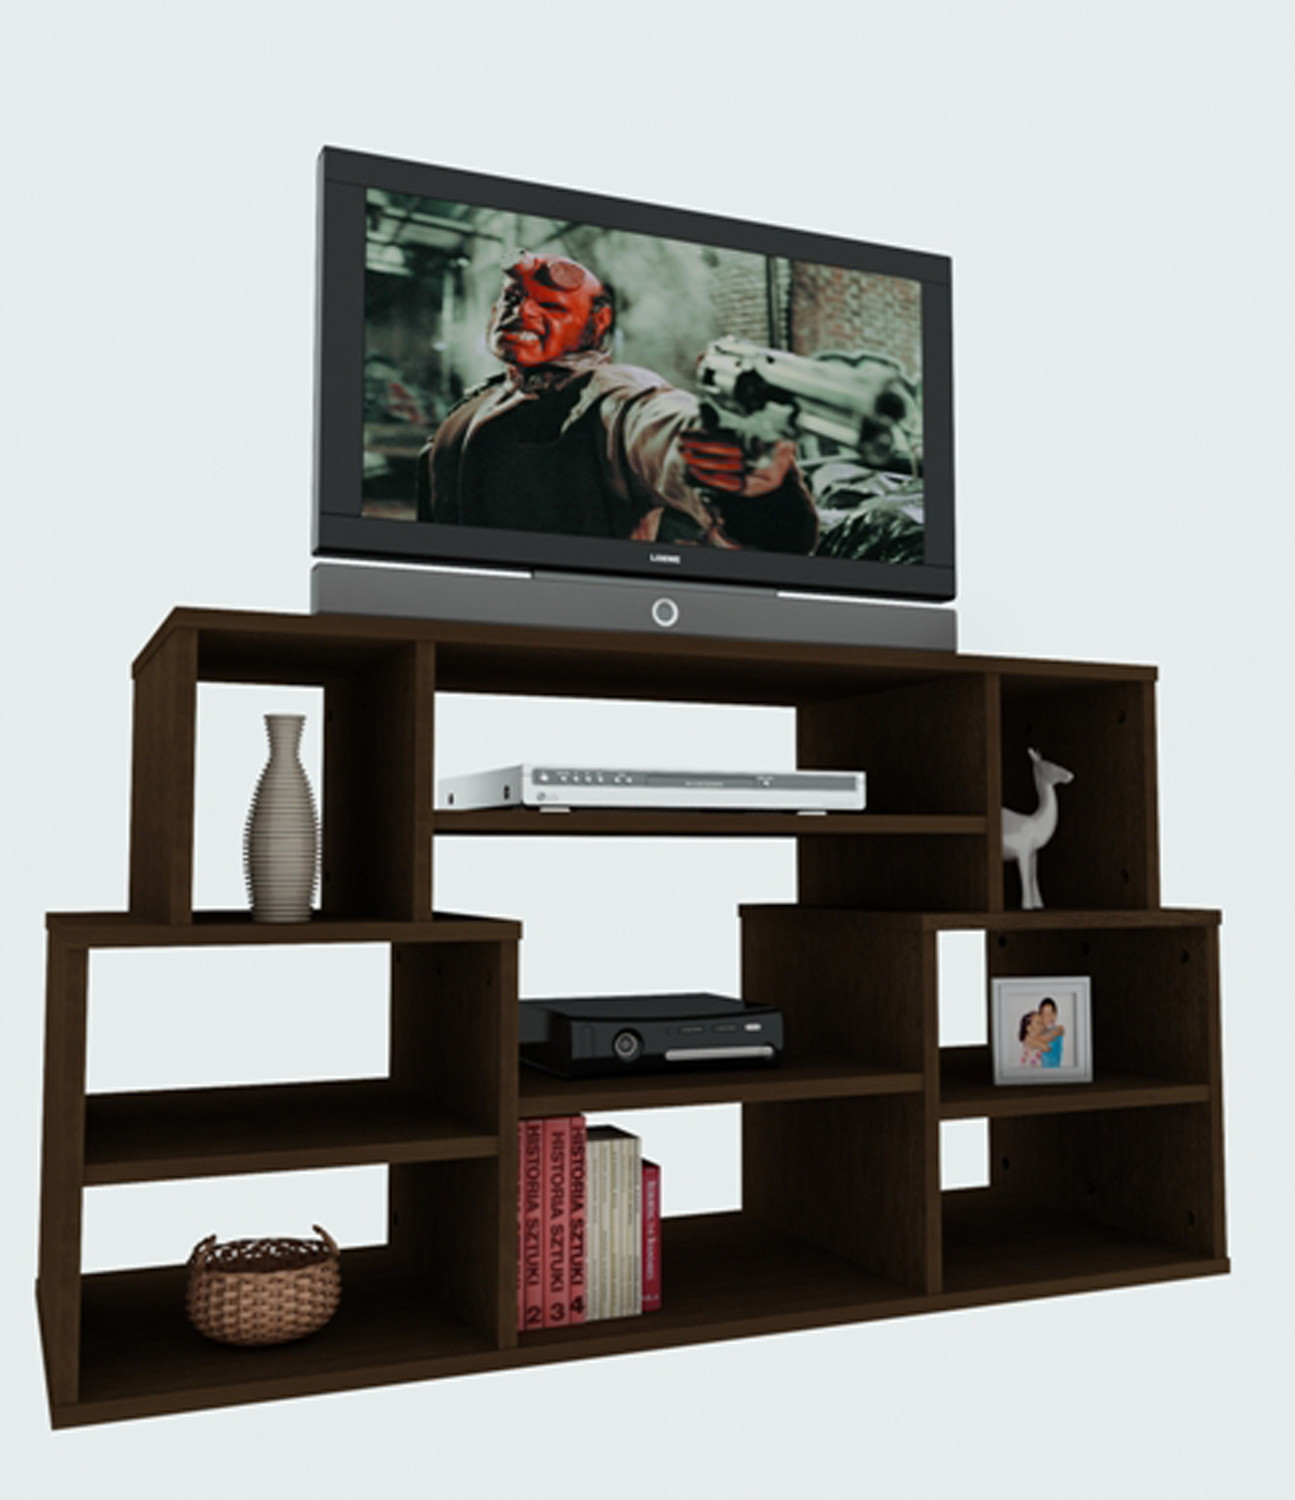 Muebles Para Tv Modernos Magnífico Tv 432 Sistemasrta Free Download Borrow and Of Muebles Para Tv Modernos Lujo Muebles Modernos Para Latest Mesas Y Sillas with Muebles